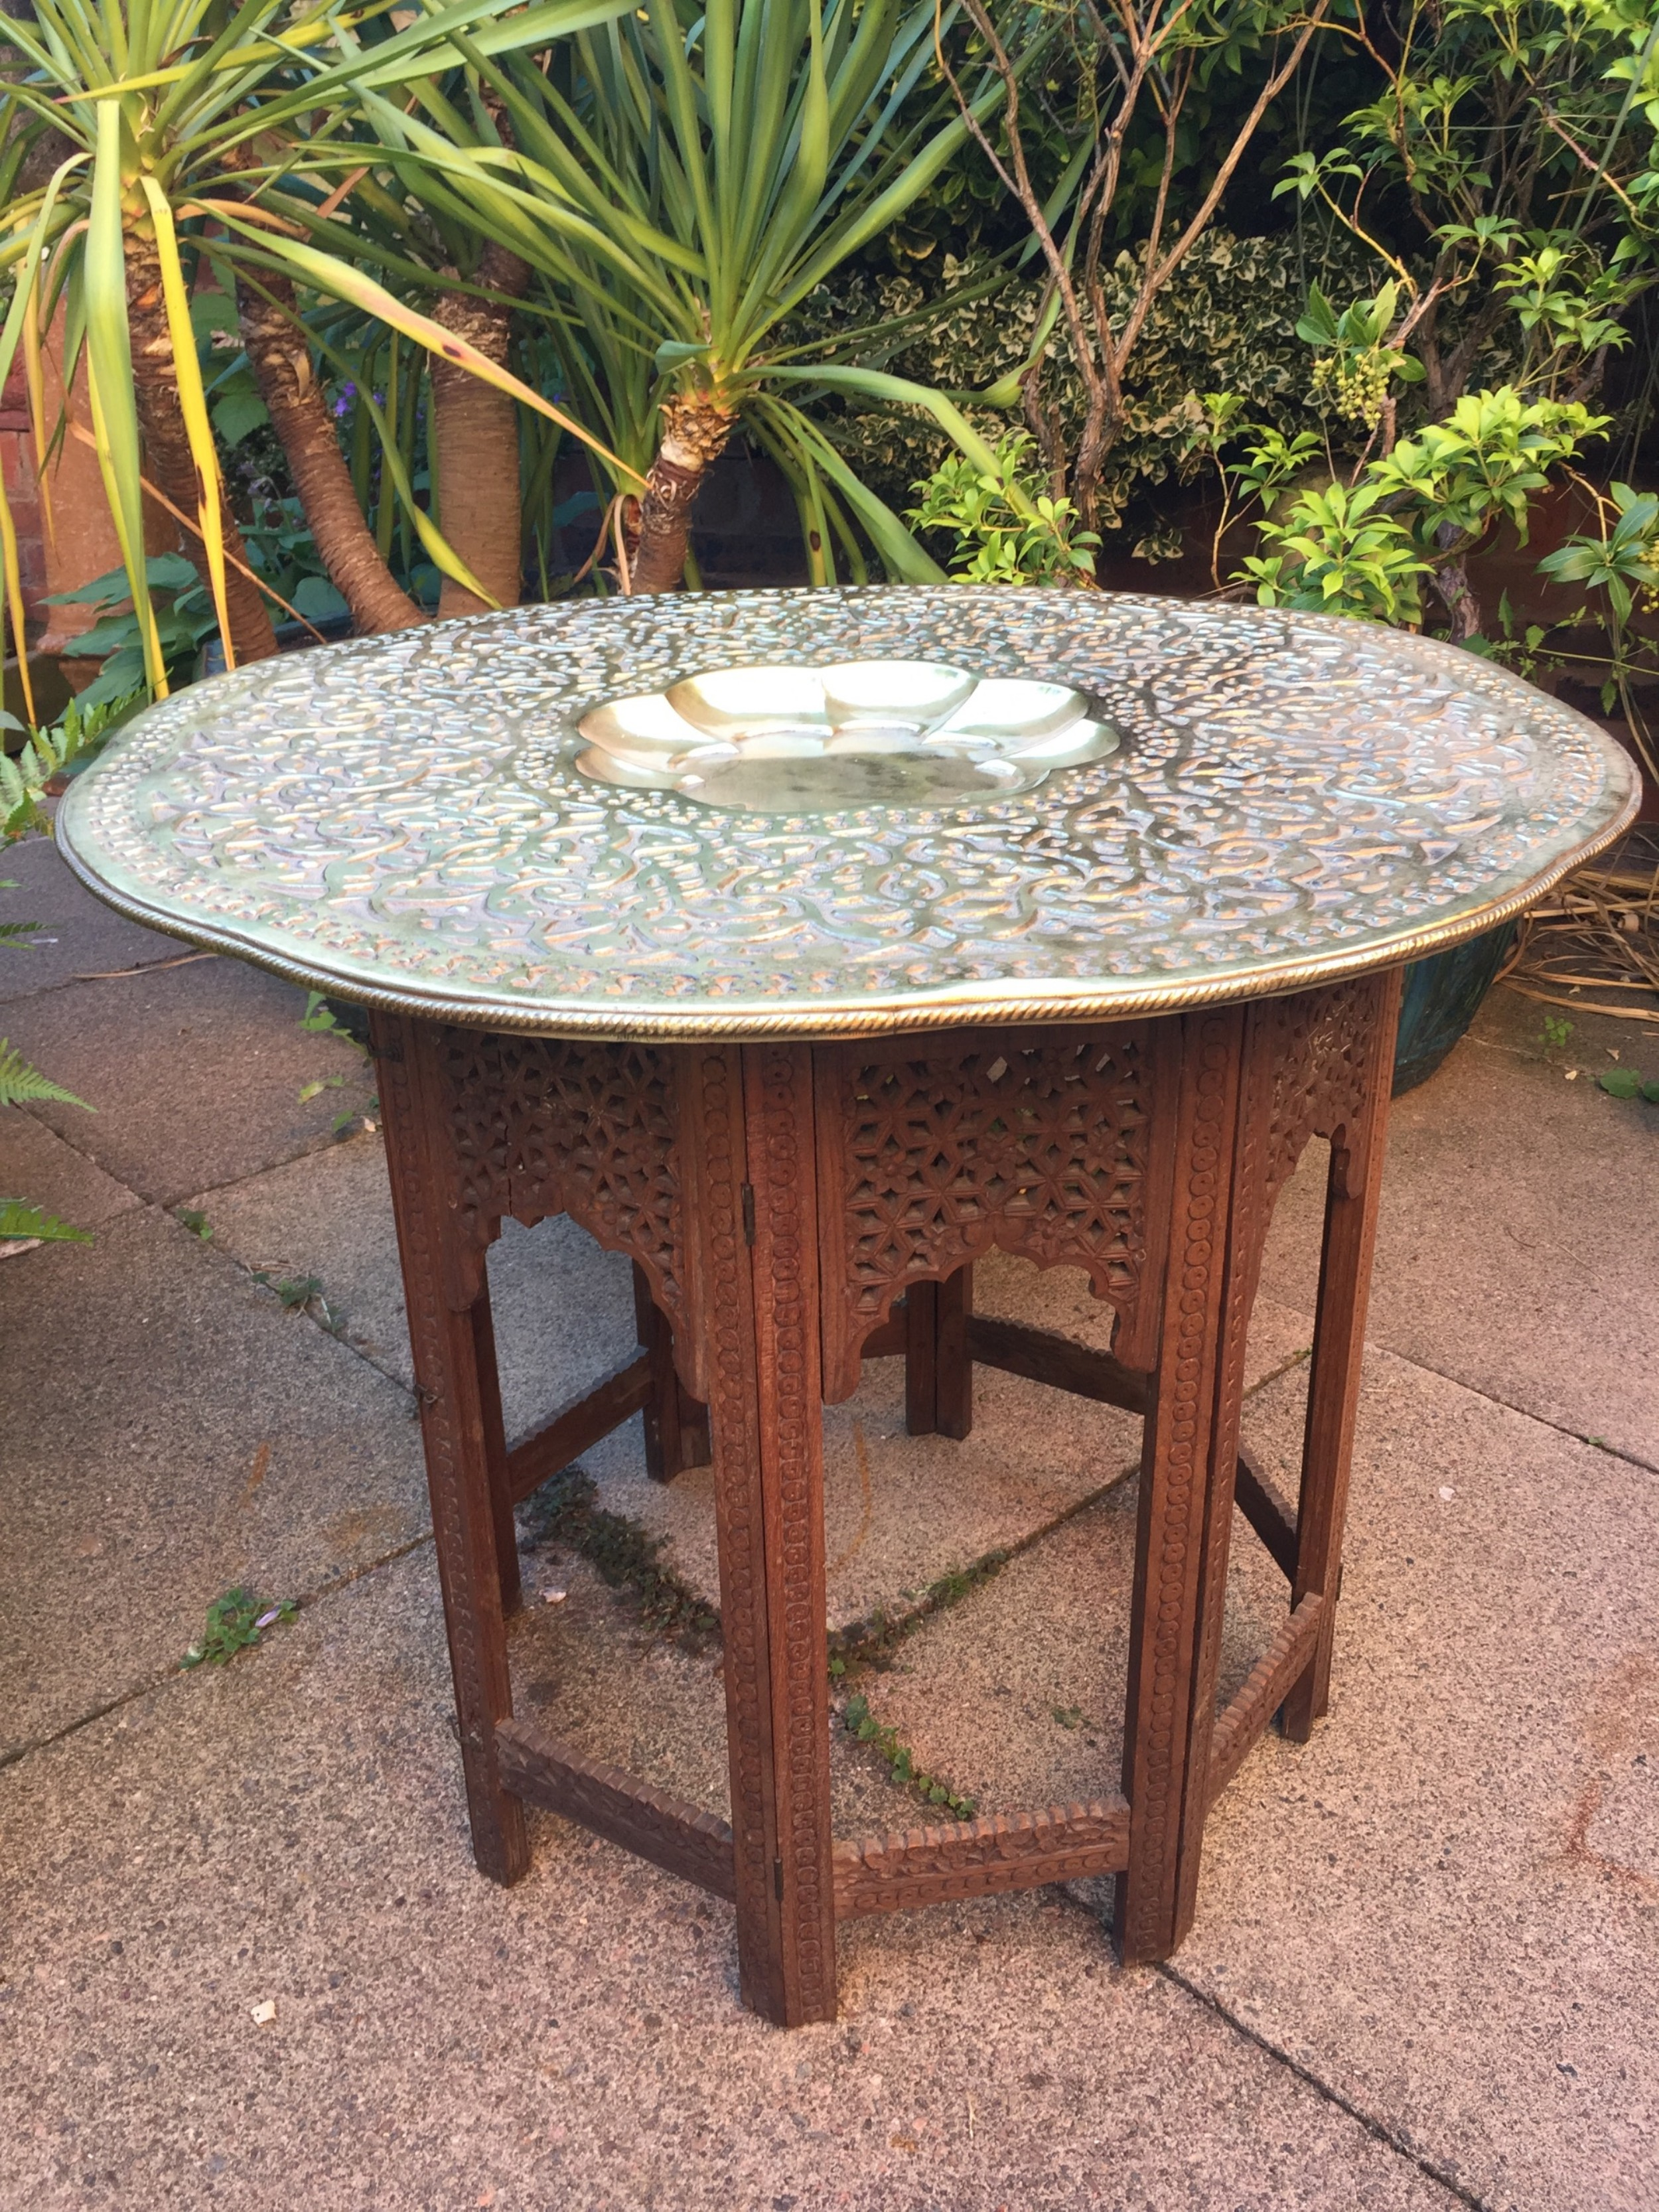 late c19th indian octagonal carved teak or 'shisham' table with castbrass top